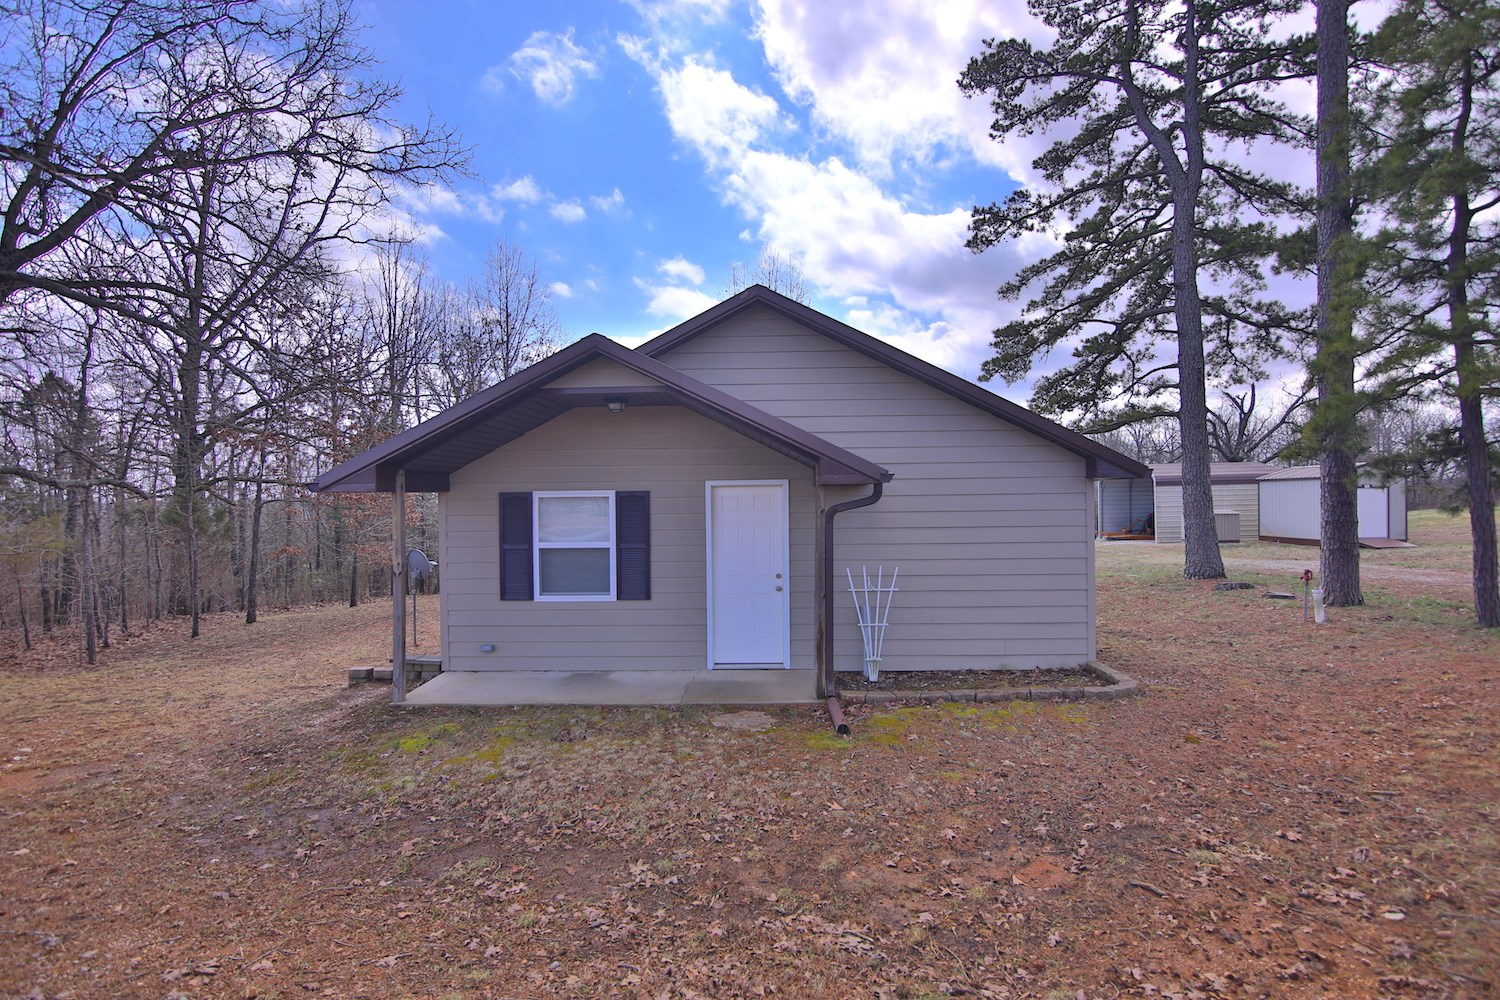 Cabin / Cottage With Acreage For Sale Near Thayer, Missouri